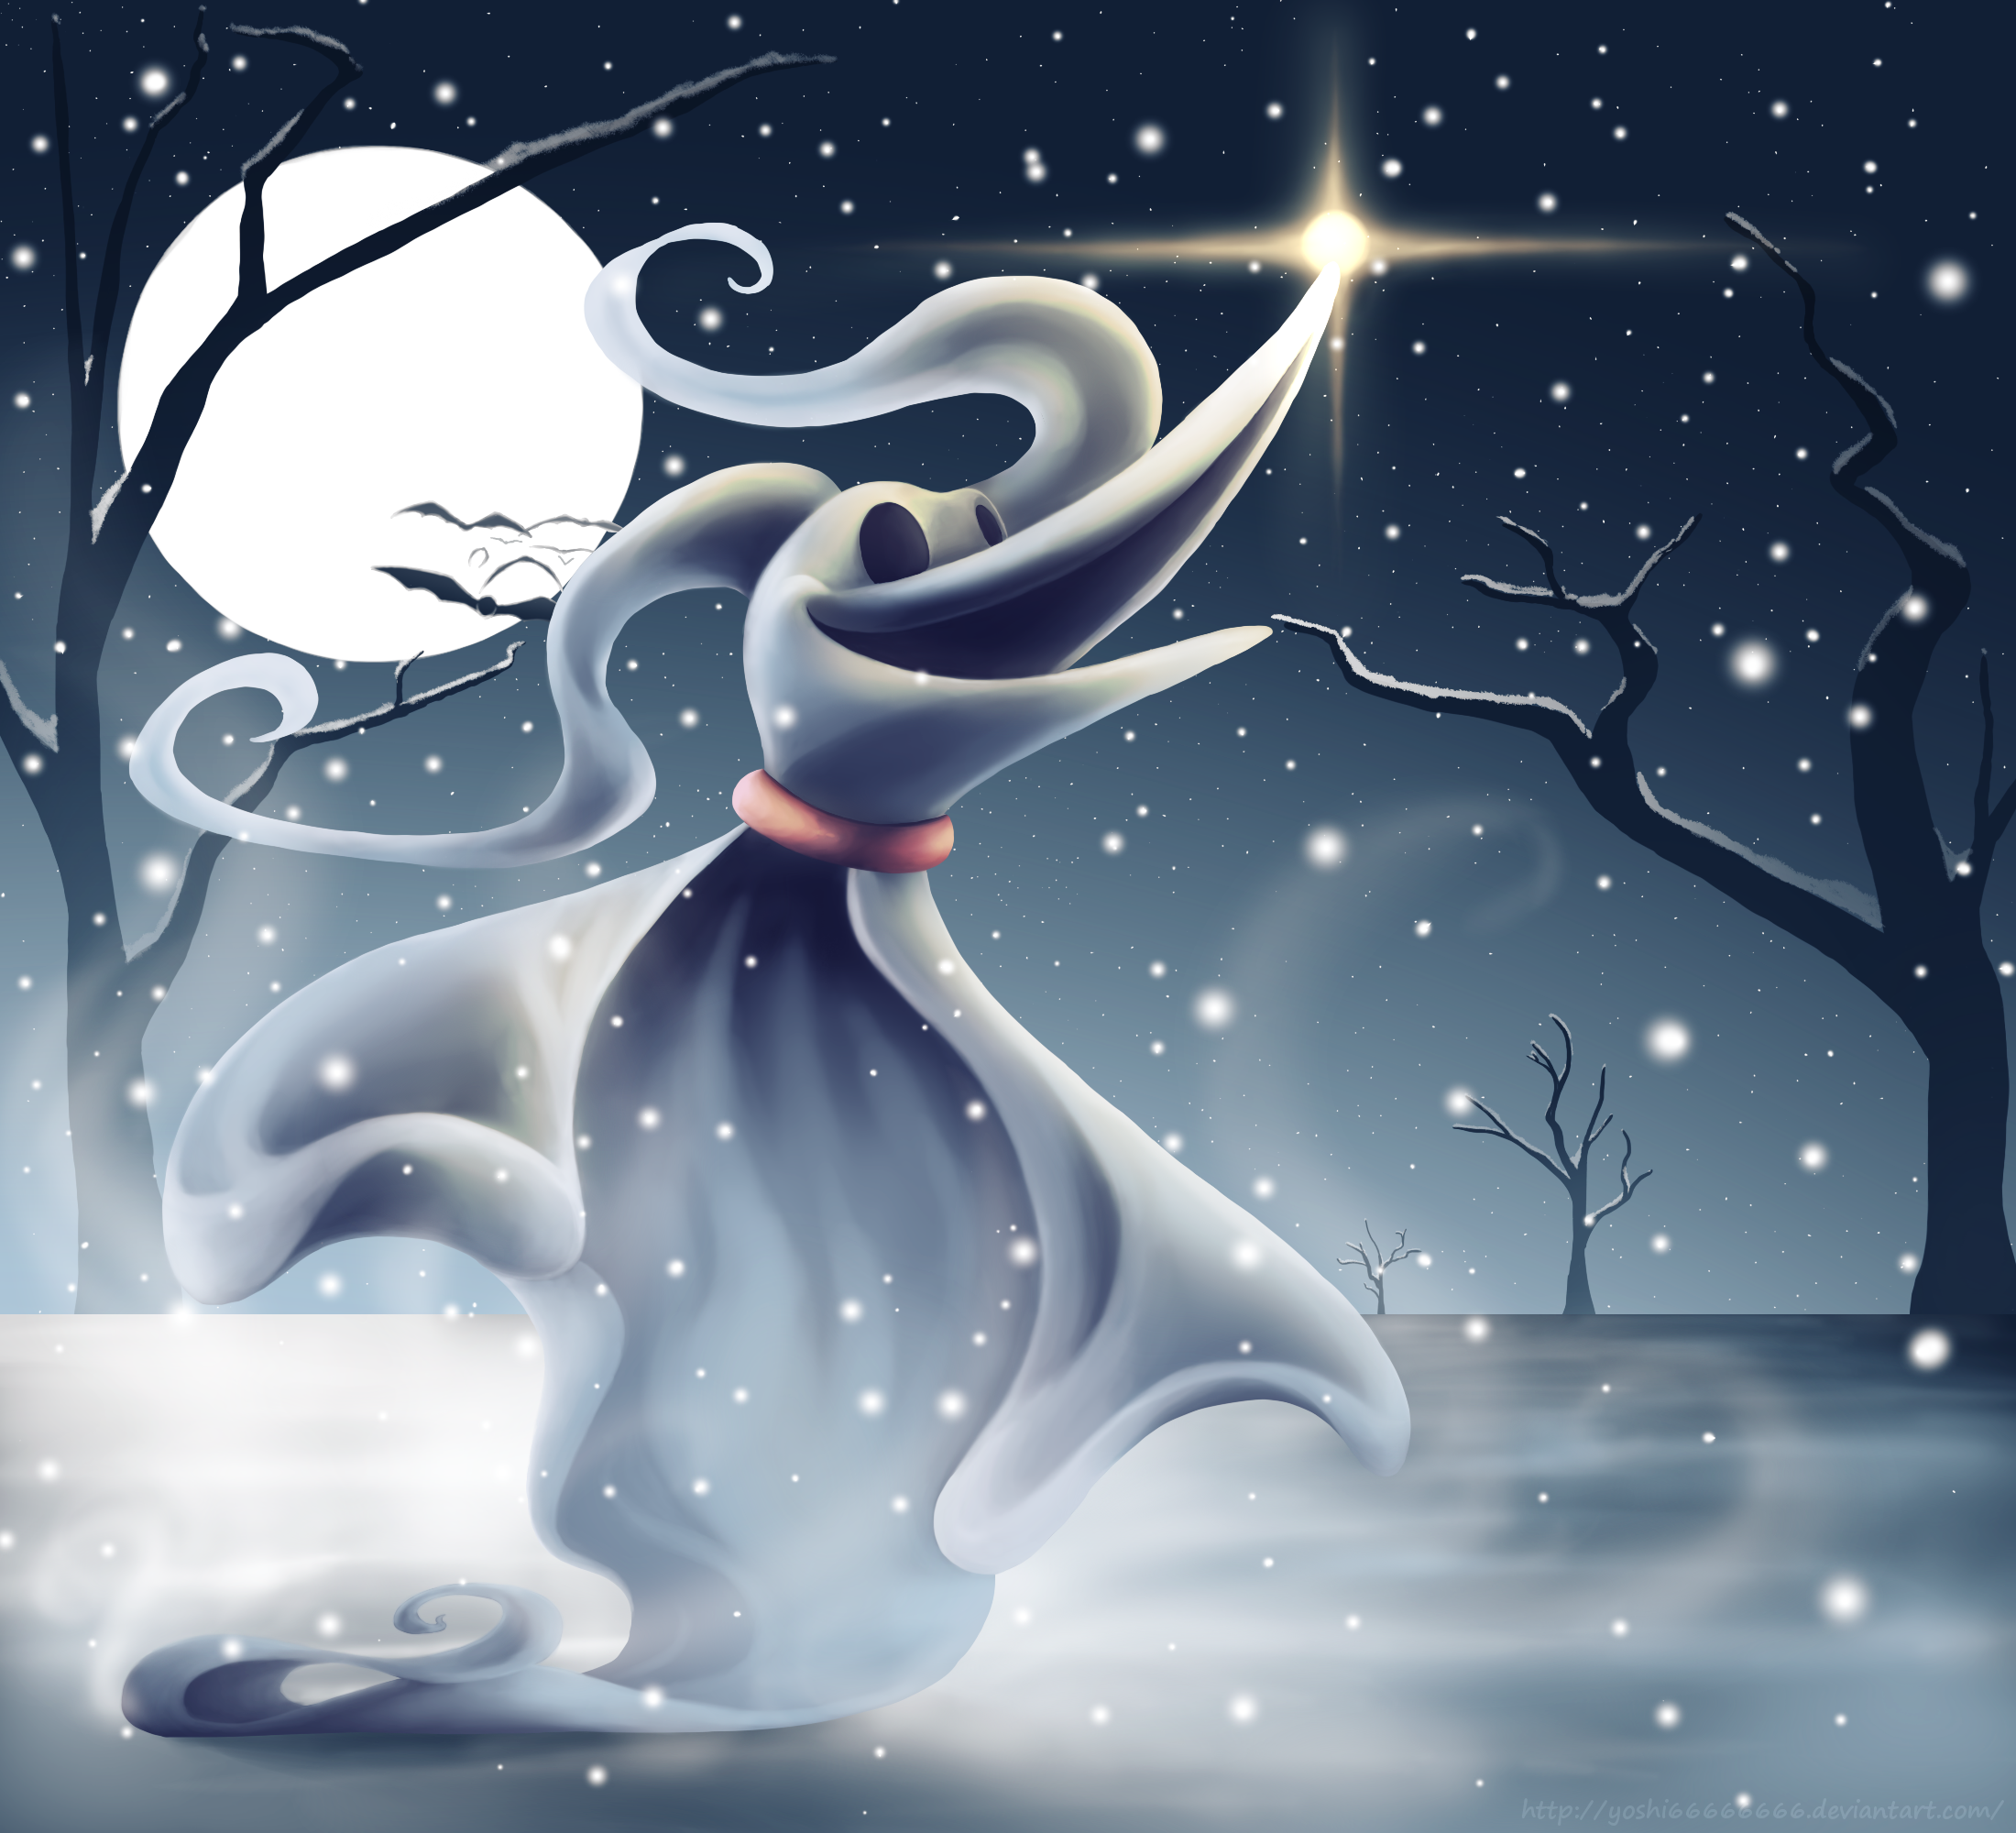 Snow By Yoshi66666666 On Deviantart Nightmare Before Christmas Wallpaper Nightmare Before Christmas Tattoo Nightmare Before Christmas Drawings